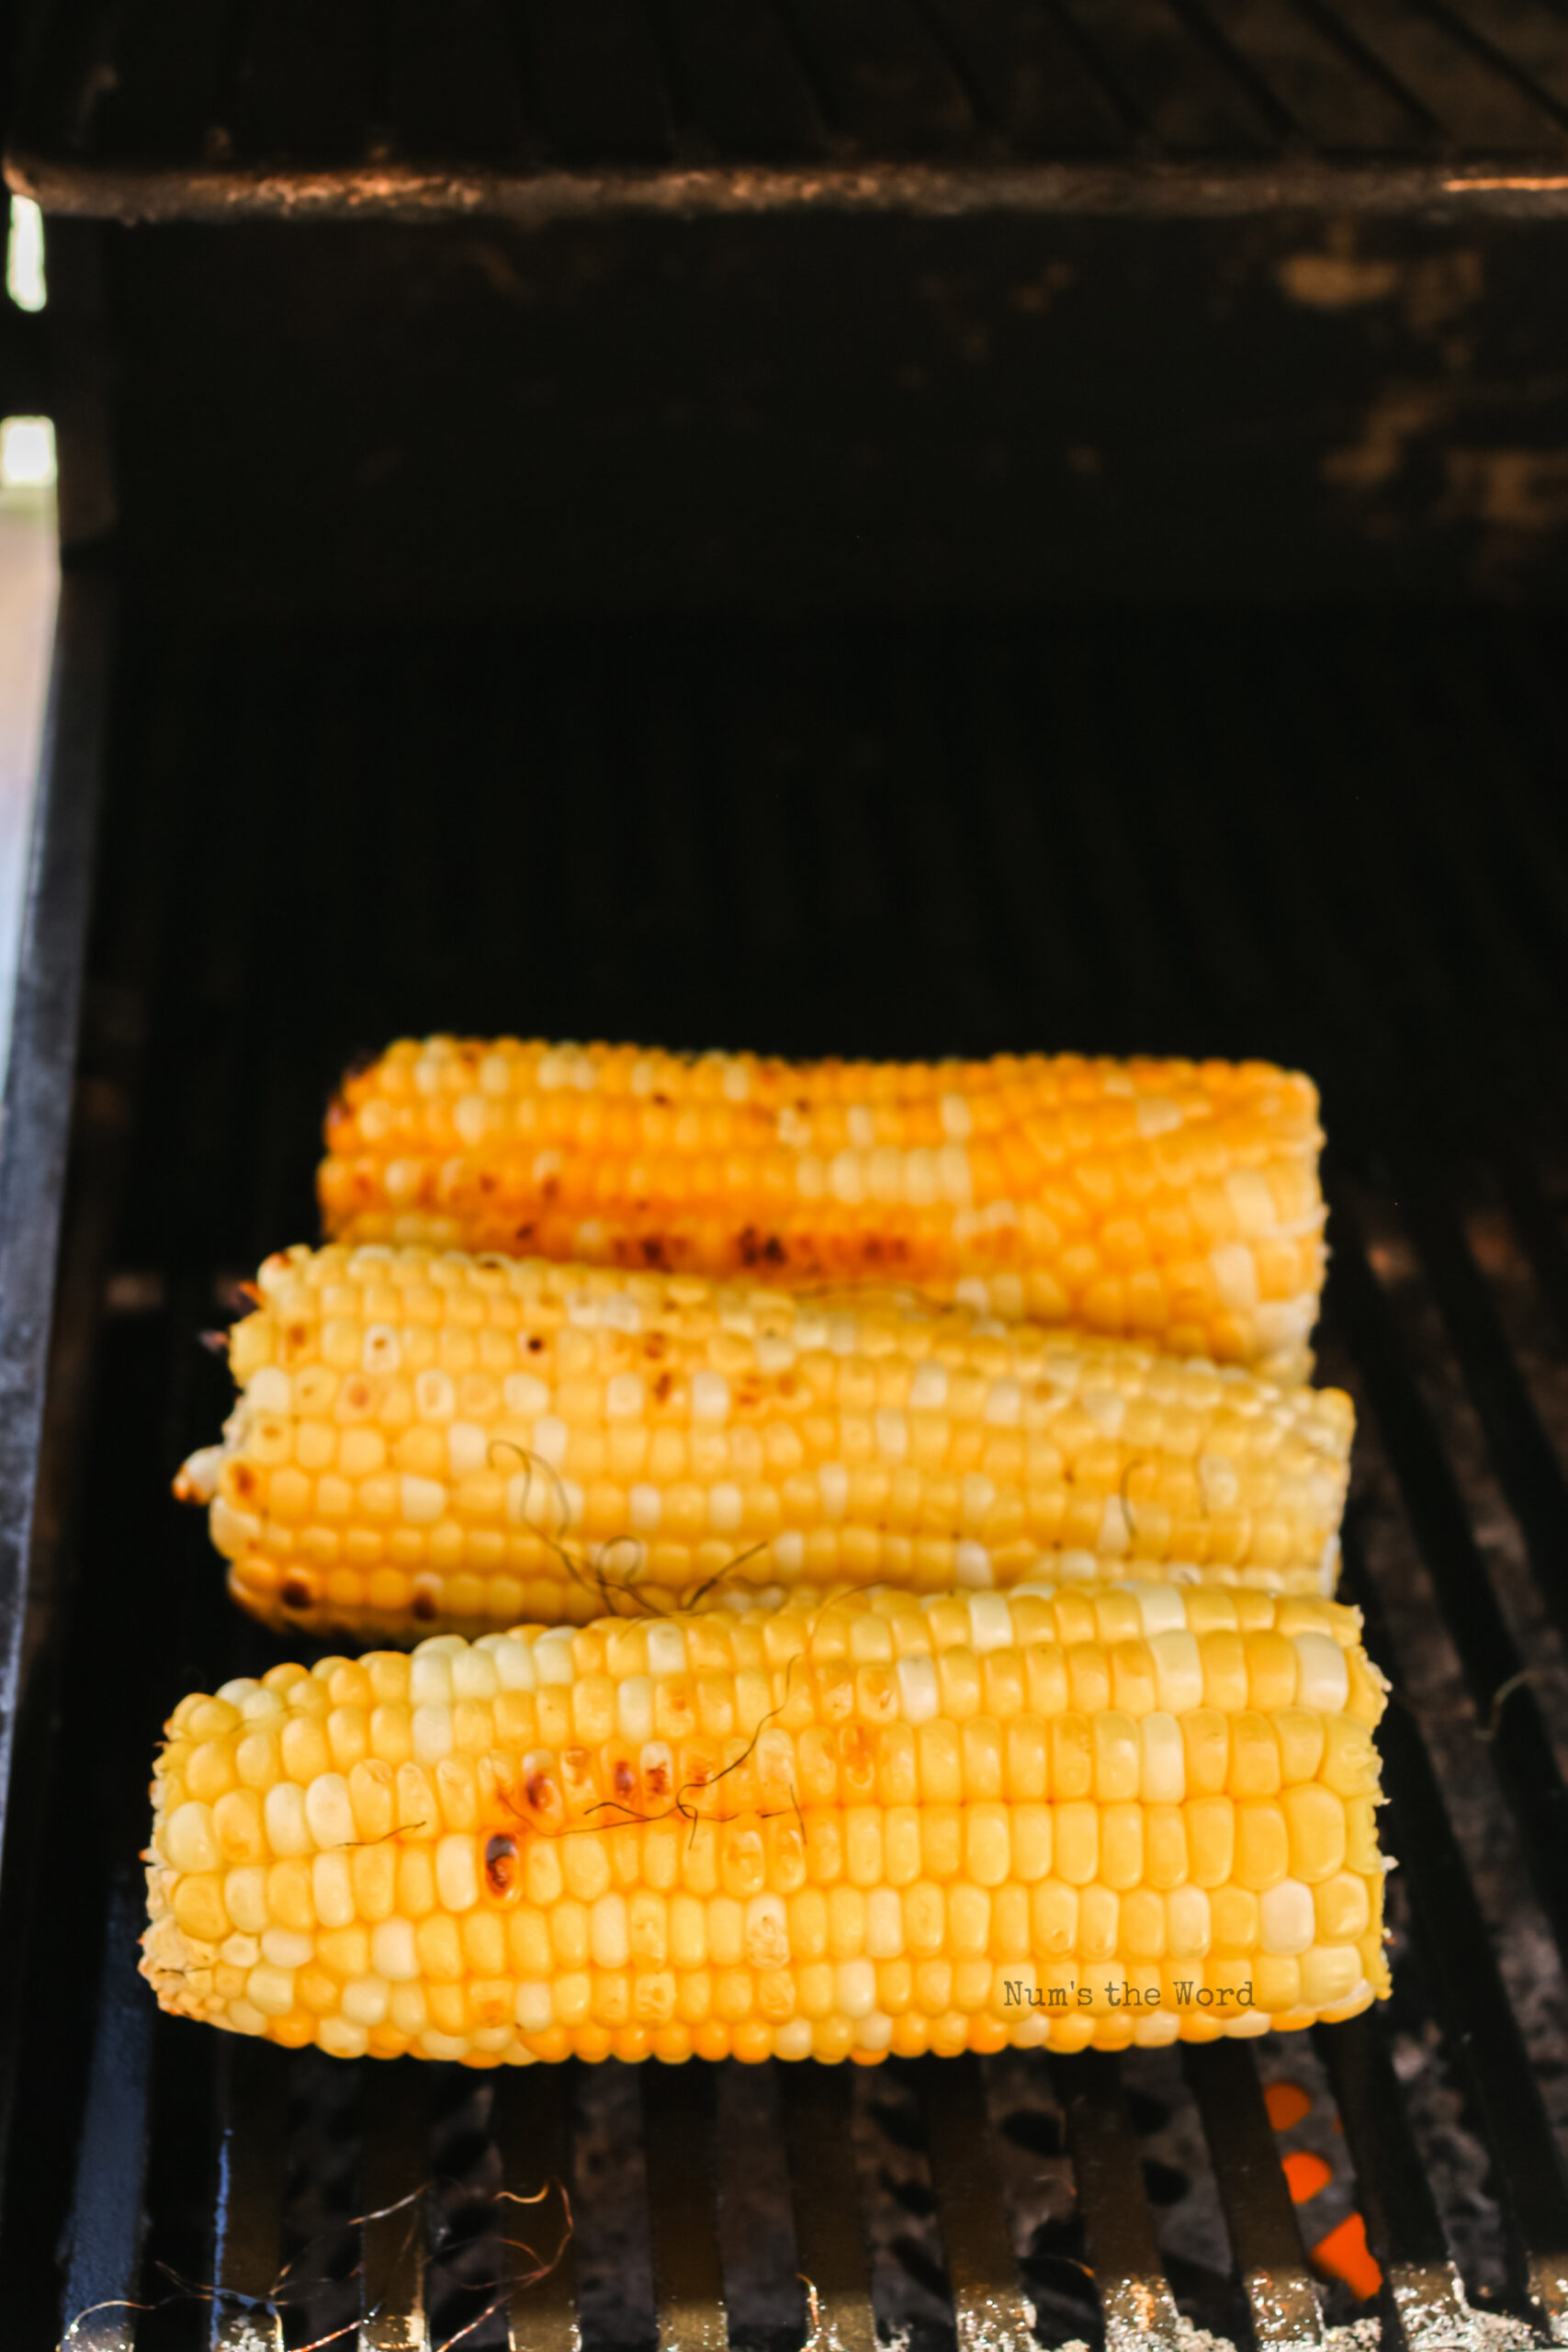 corn cobs removed from foil and charred on grill.